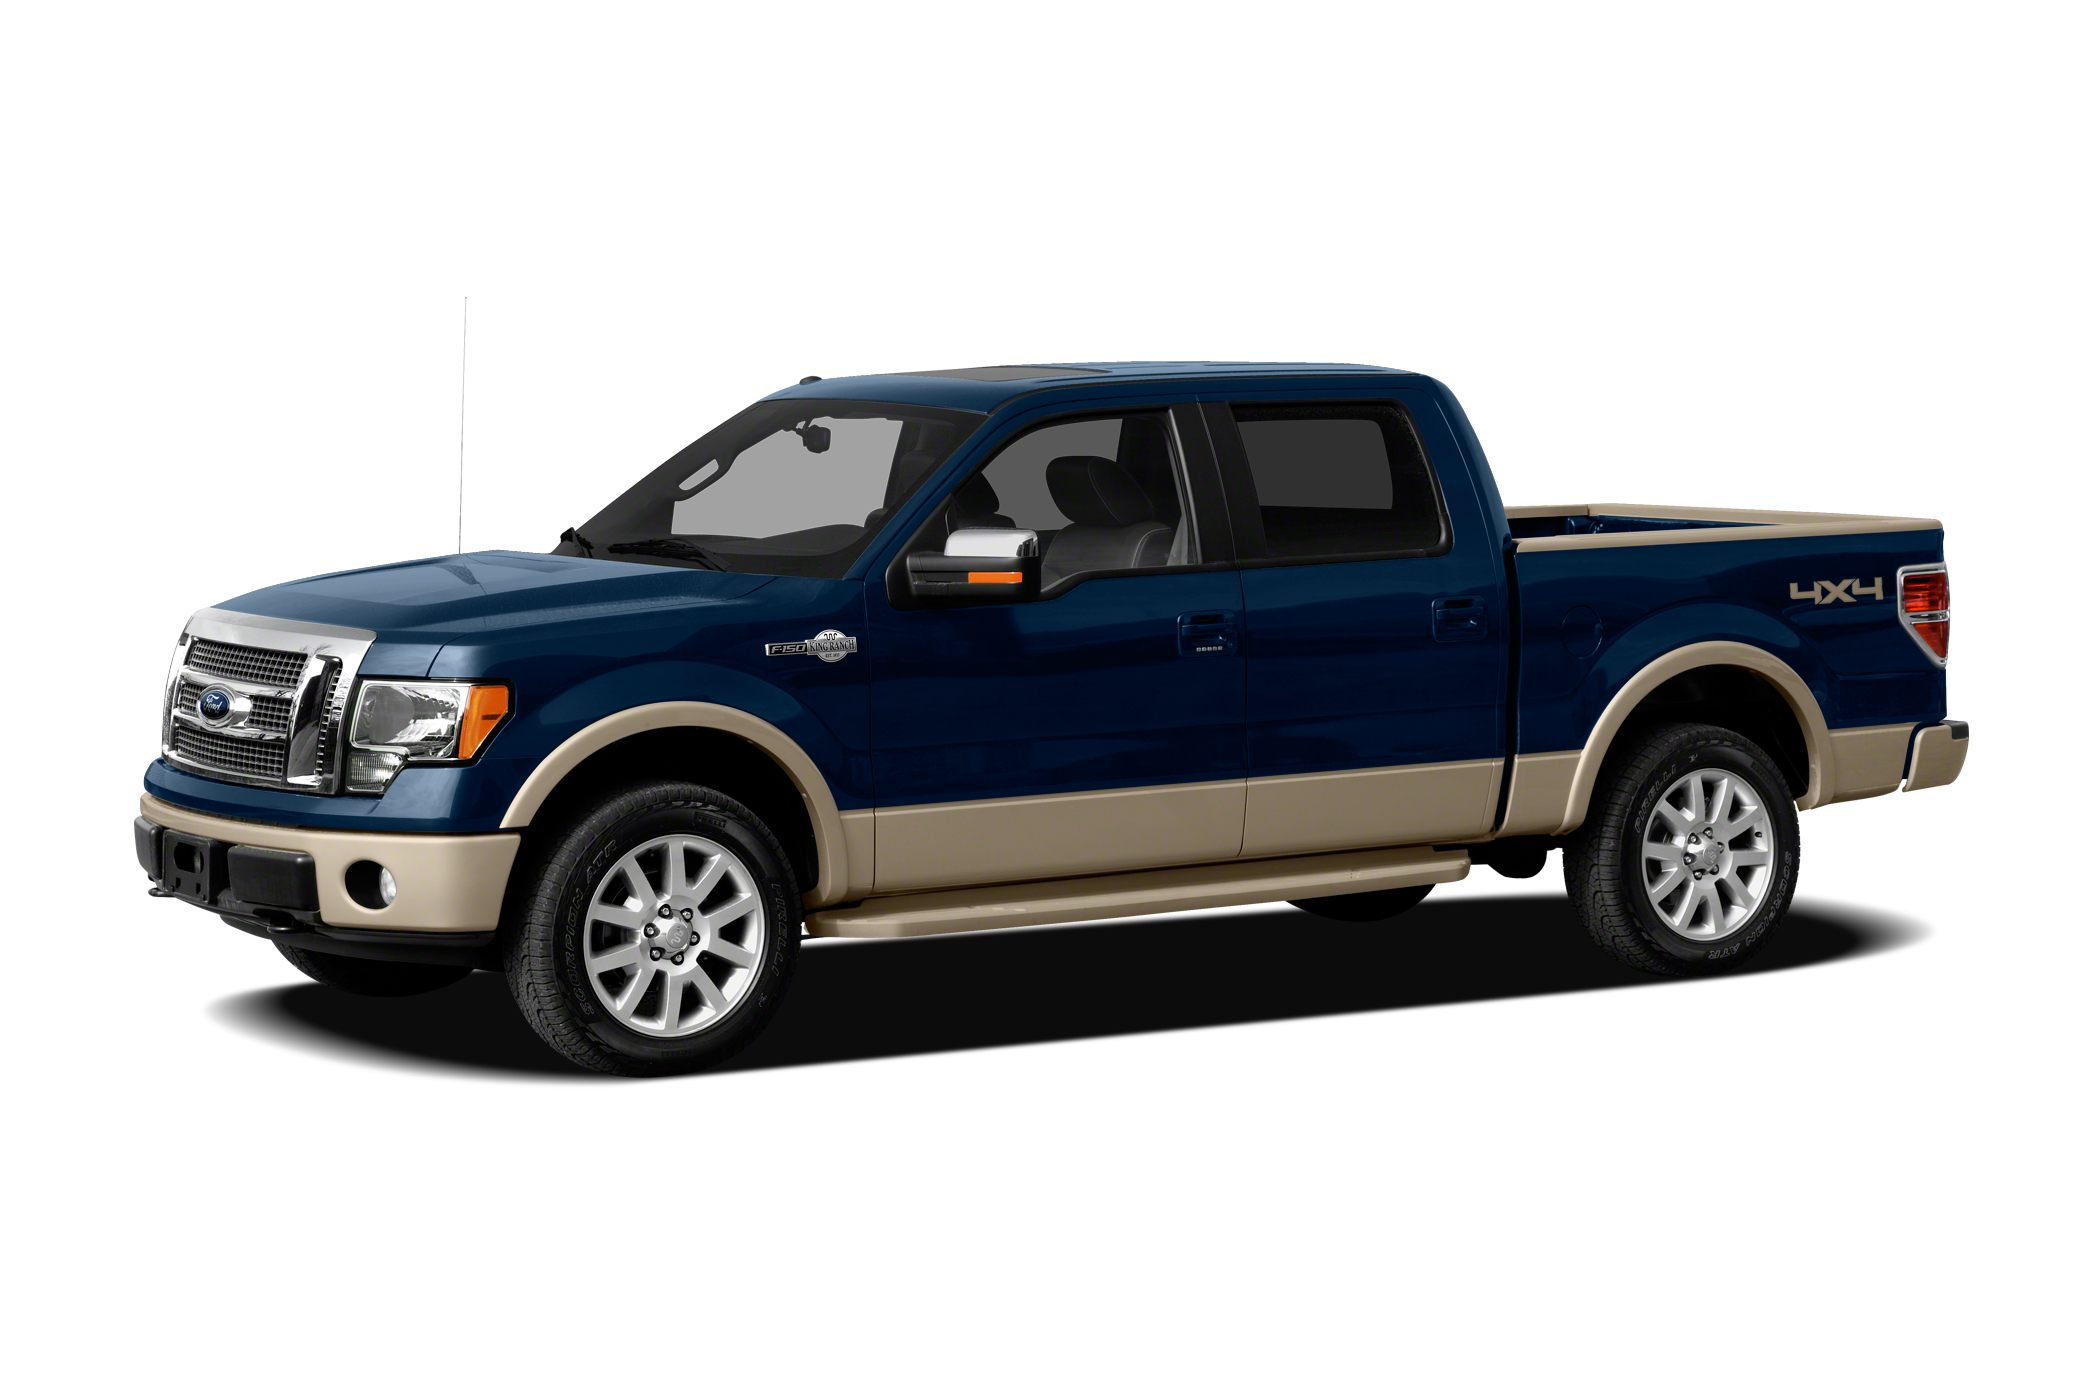 2012 Ford F150 King Ranch Crew Cab Pickup for sale in Crestview for $38,488 with 36,954 miles